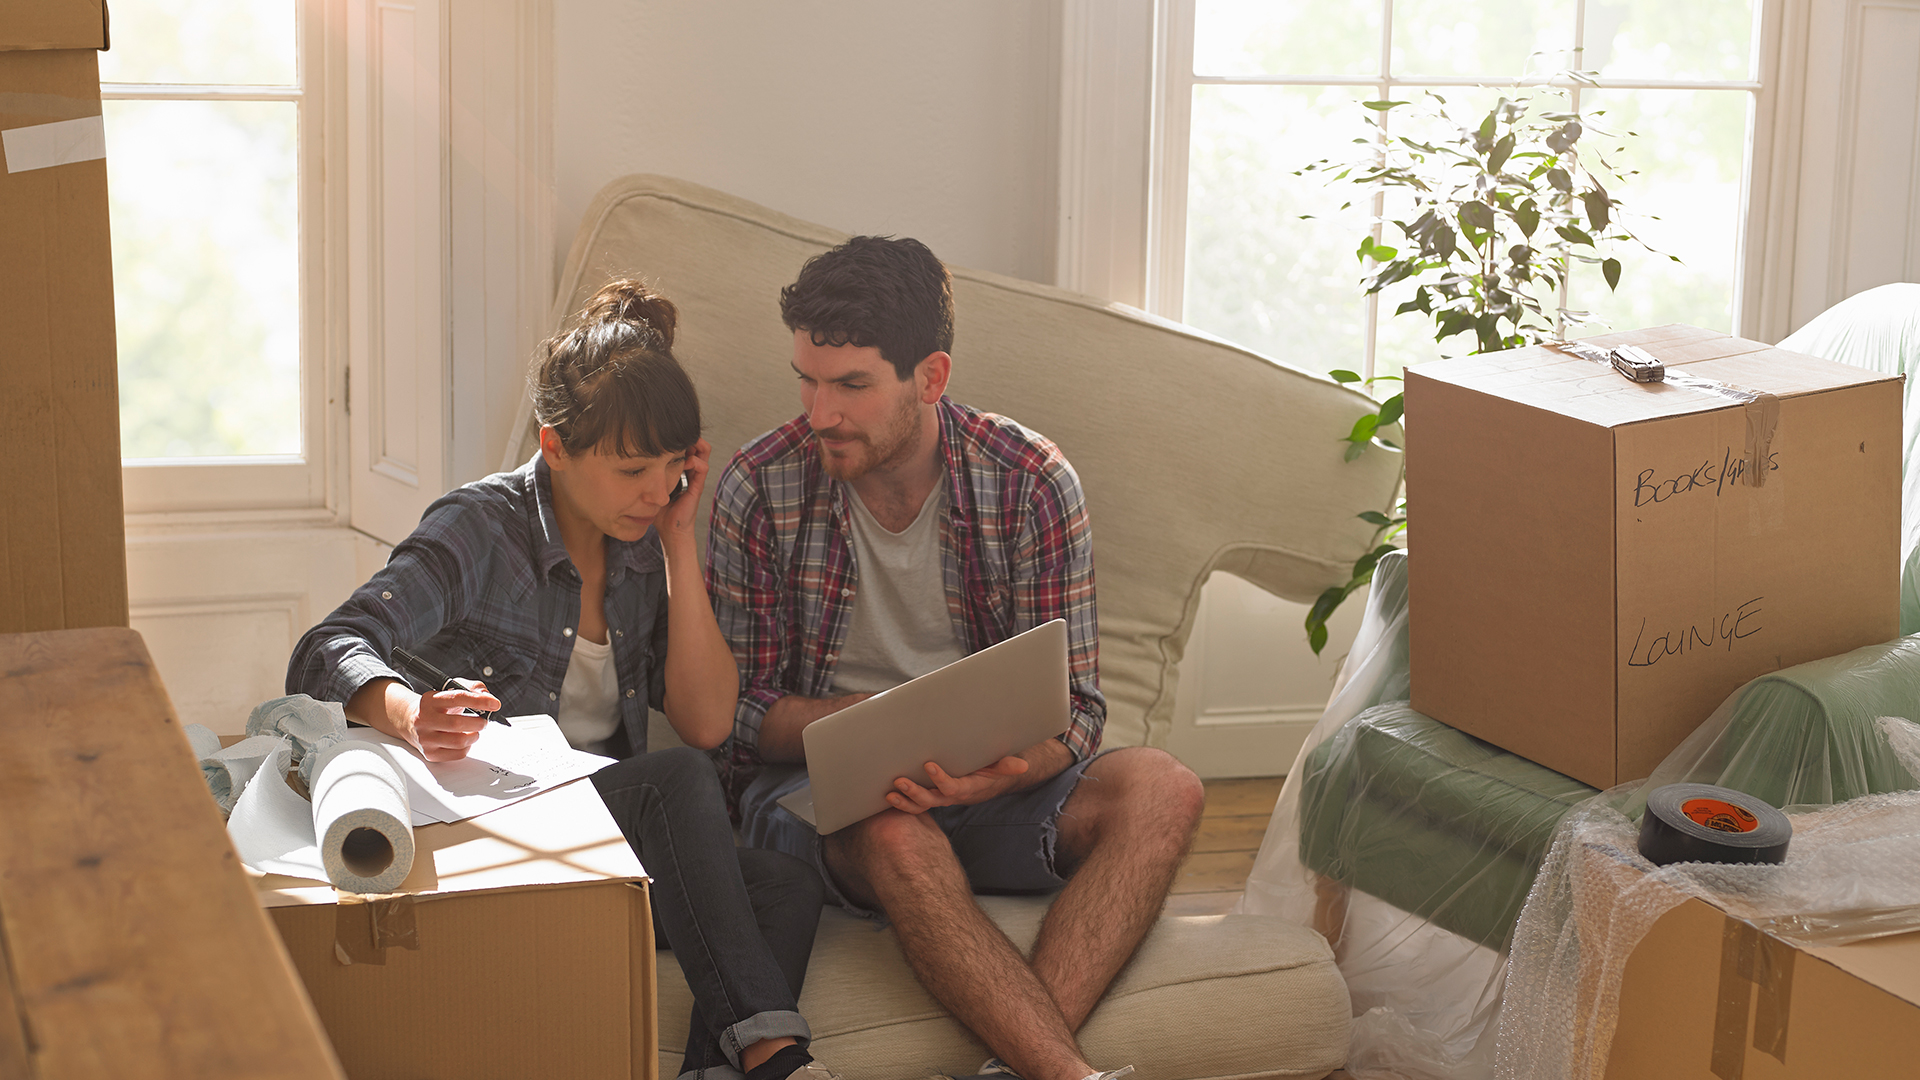 Couple planning for move